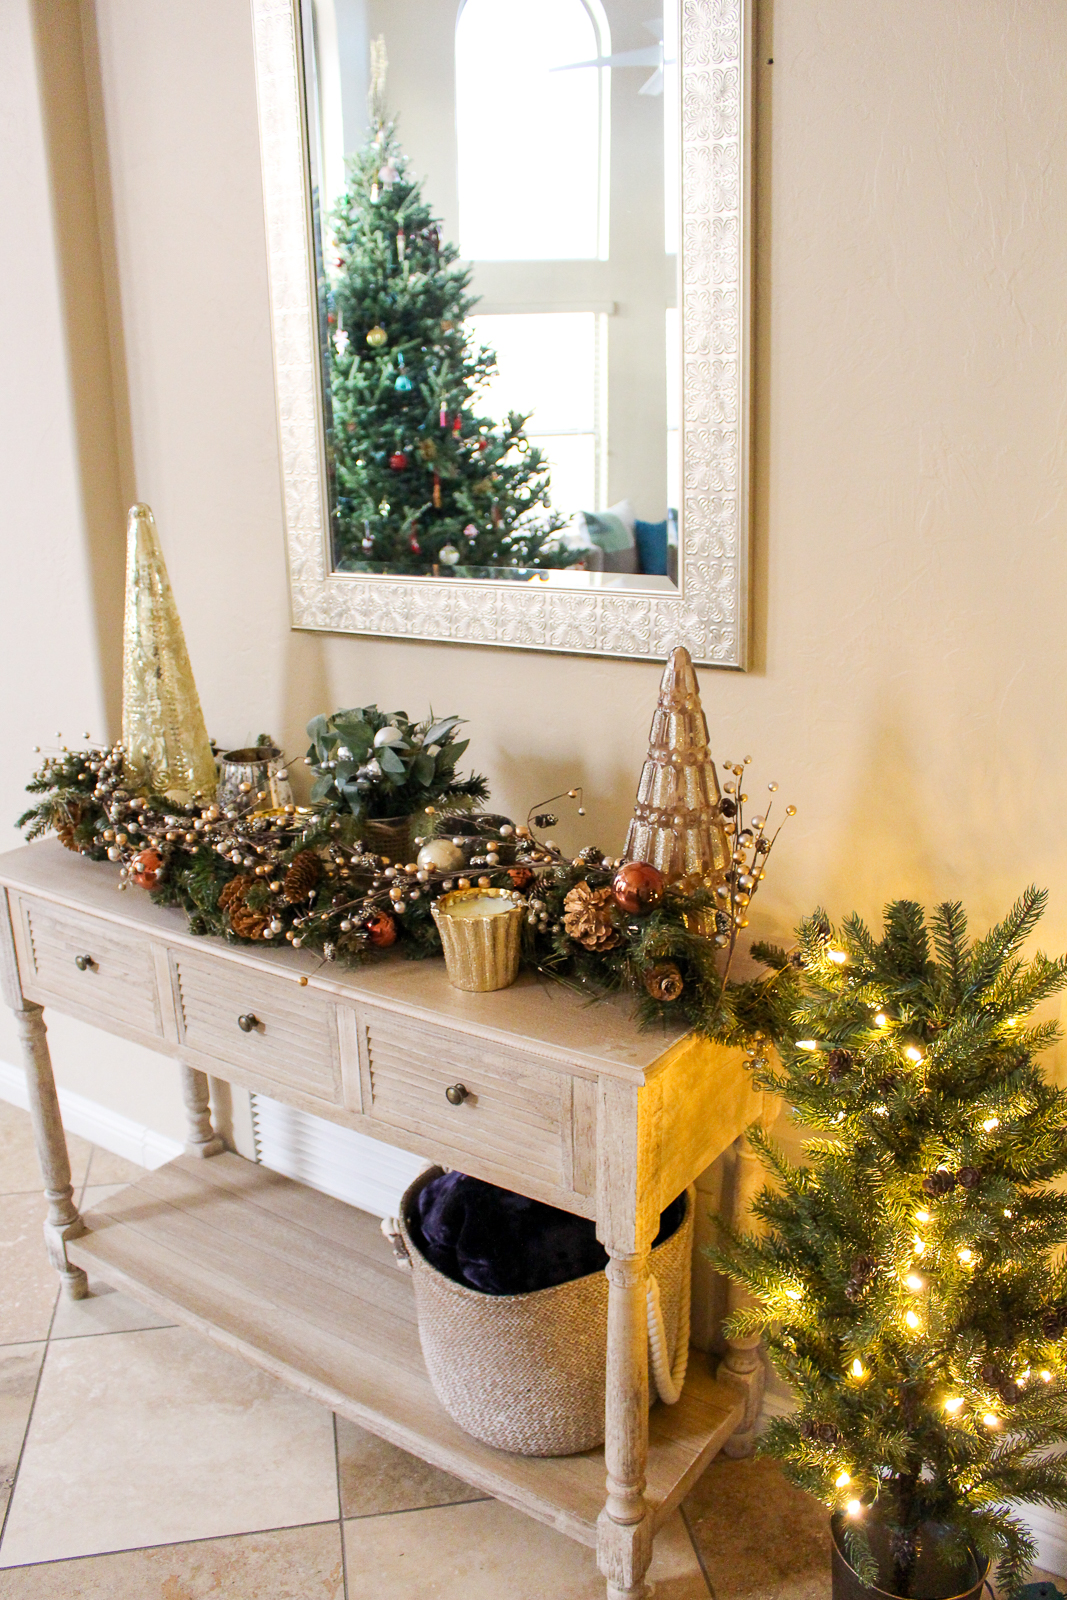 End table with bronze and gold holiday decorations, gold Christmas trees and candles